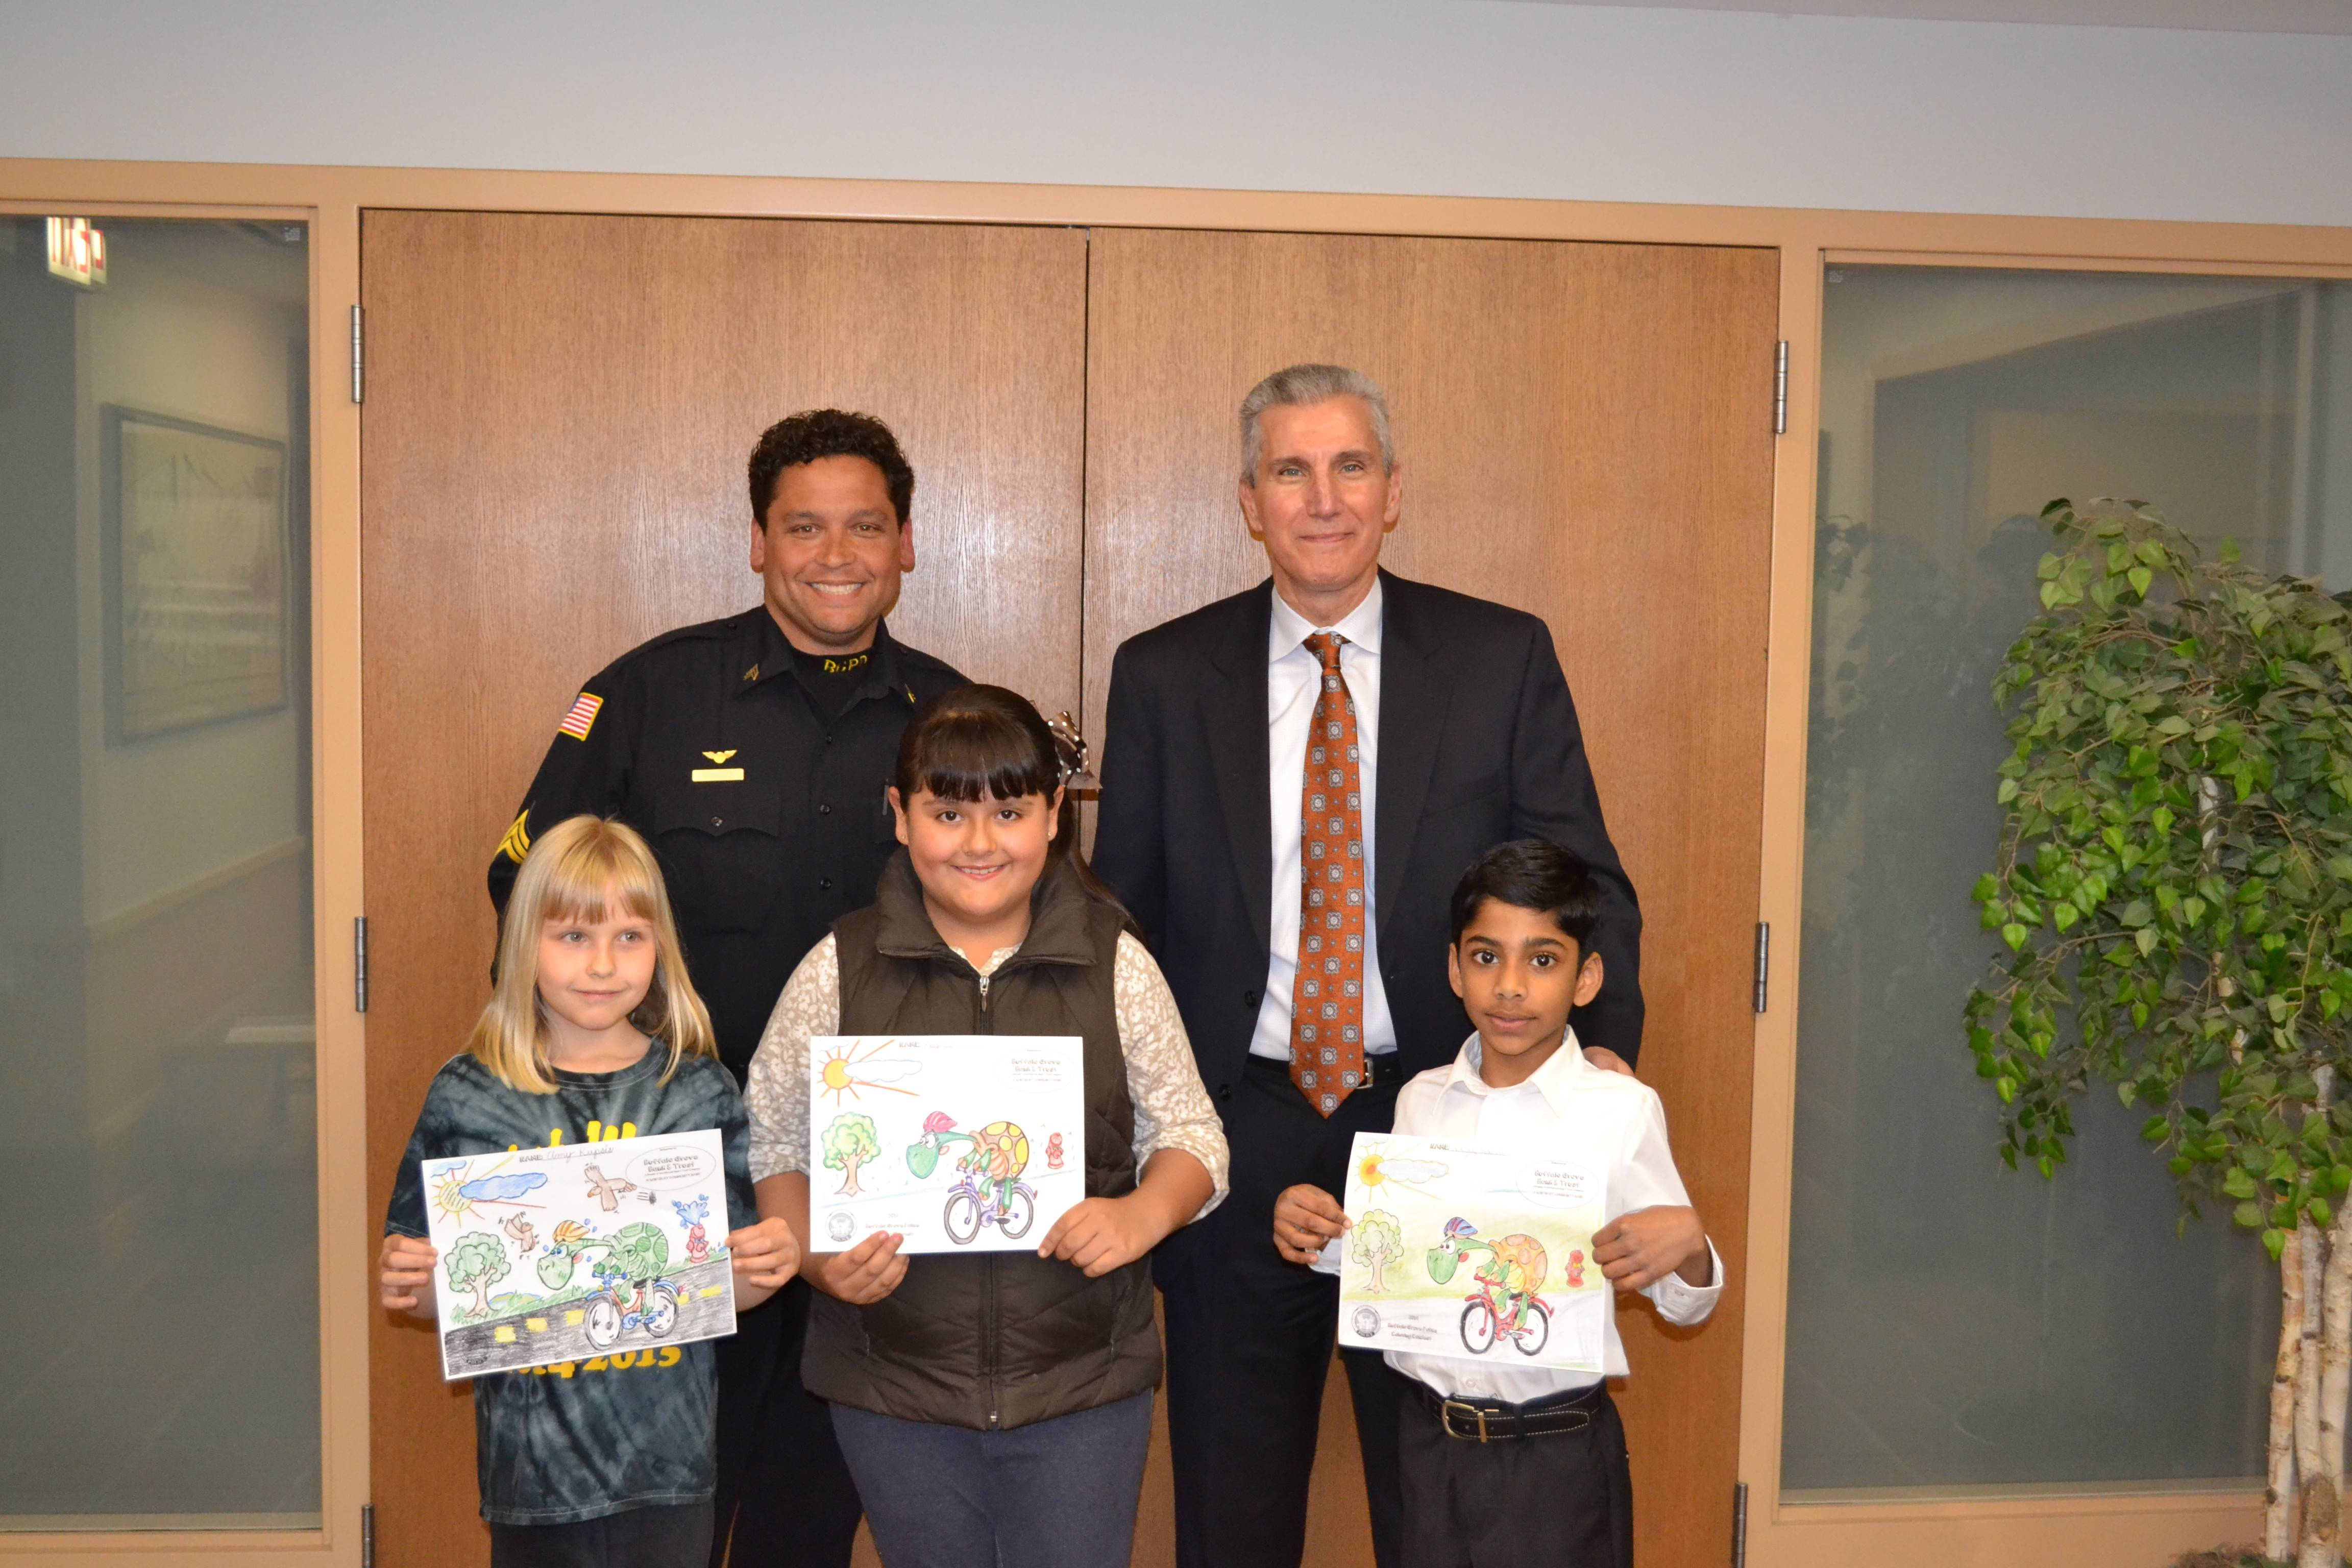 Winners of the coloring contest include, from left, Amy Rupsis, third grade, St. Mary's School; Regina Garcia, second grade, Tripp Elementary School; and Nagayuvan Ayyachamy, first grade, Tripp Elementary School. In back are Buffalo Grove Police Officer Michael Rodriguez and Mike Abruzzini from the Buffalo Grove Bank & Trust.